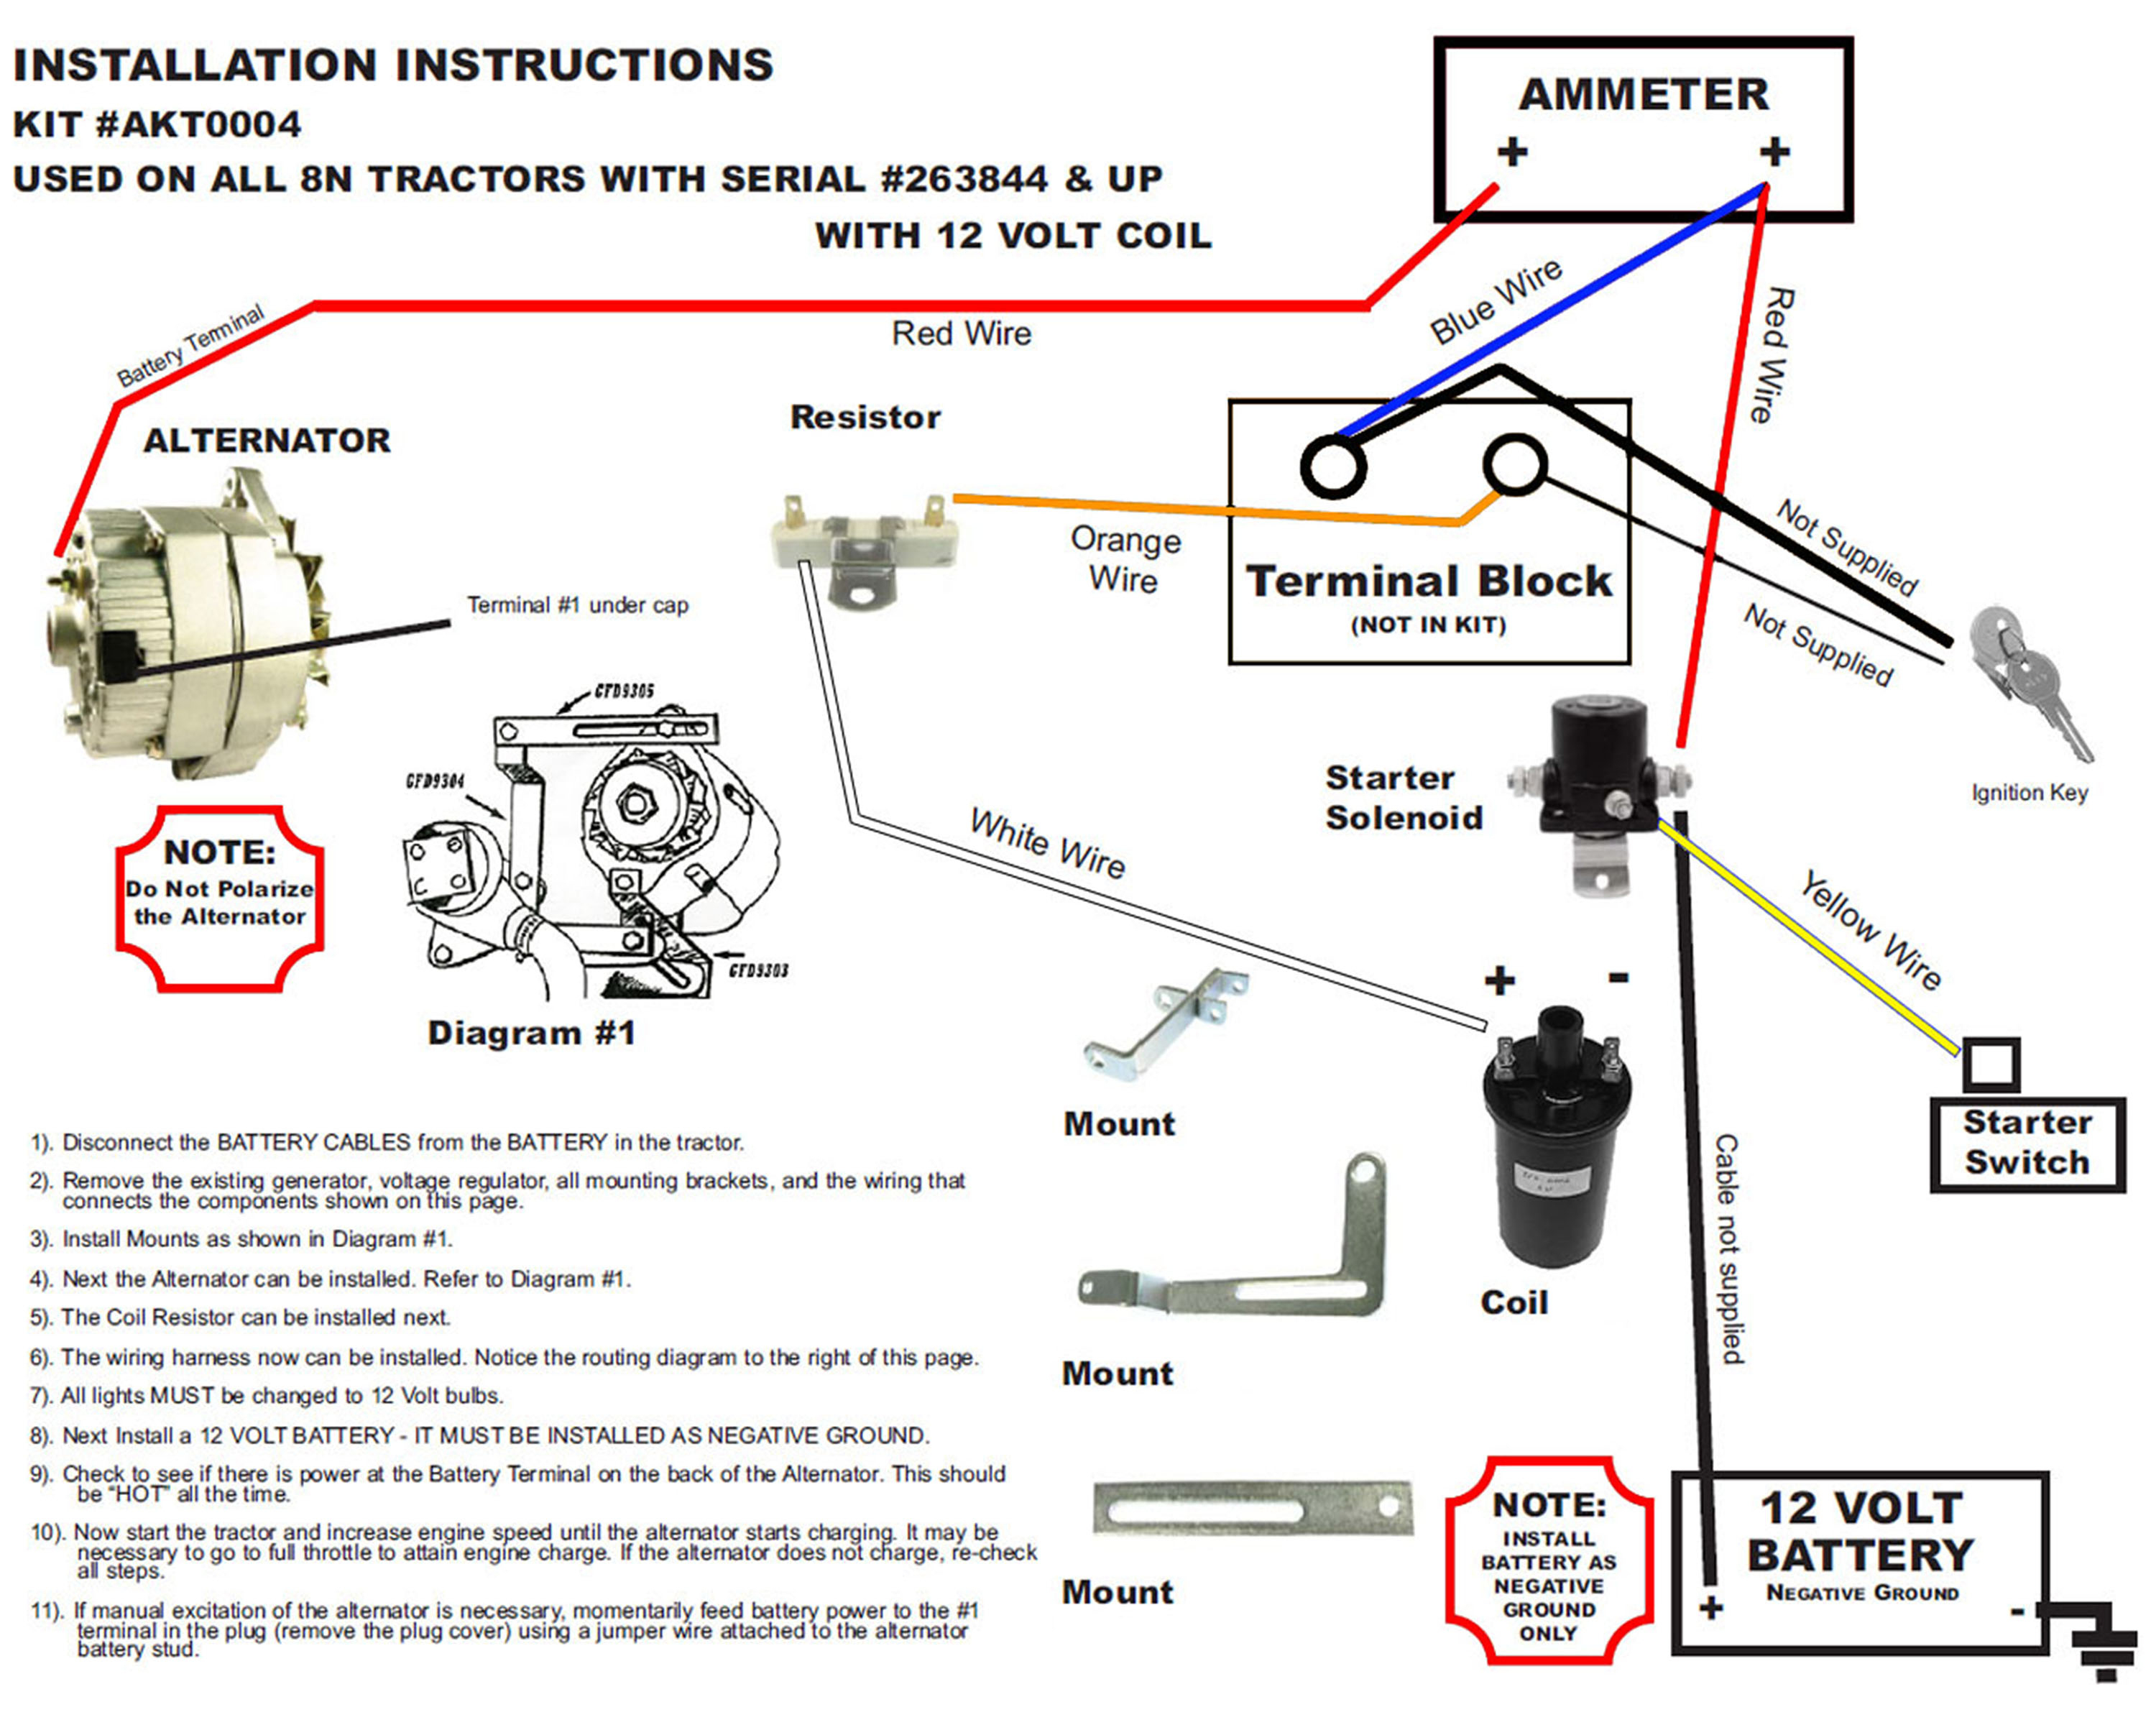 12 Volt Wiring Diagram Ford 8N Tractor 1 Wire Alternator - Wiring - Ford 8N 12 Volt Conversion Wiring Diagram